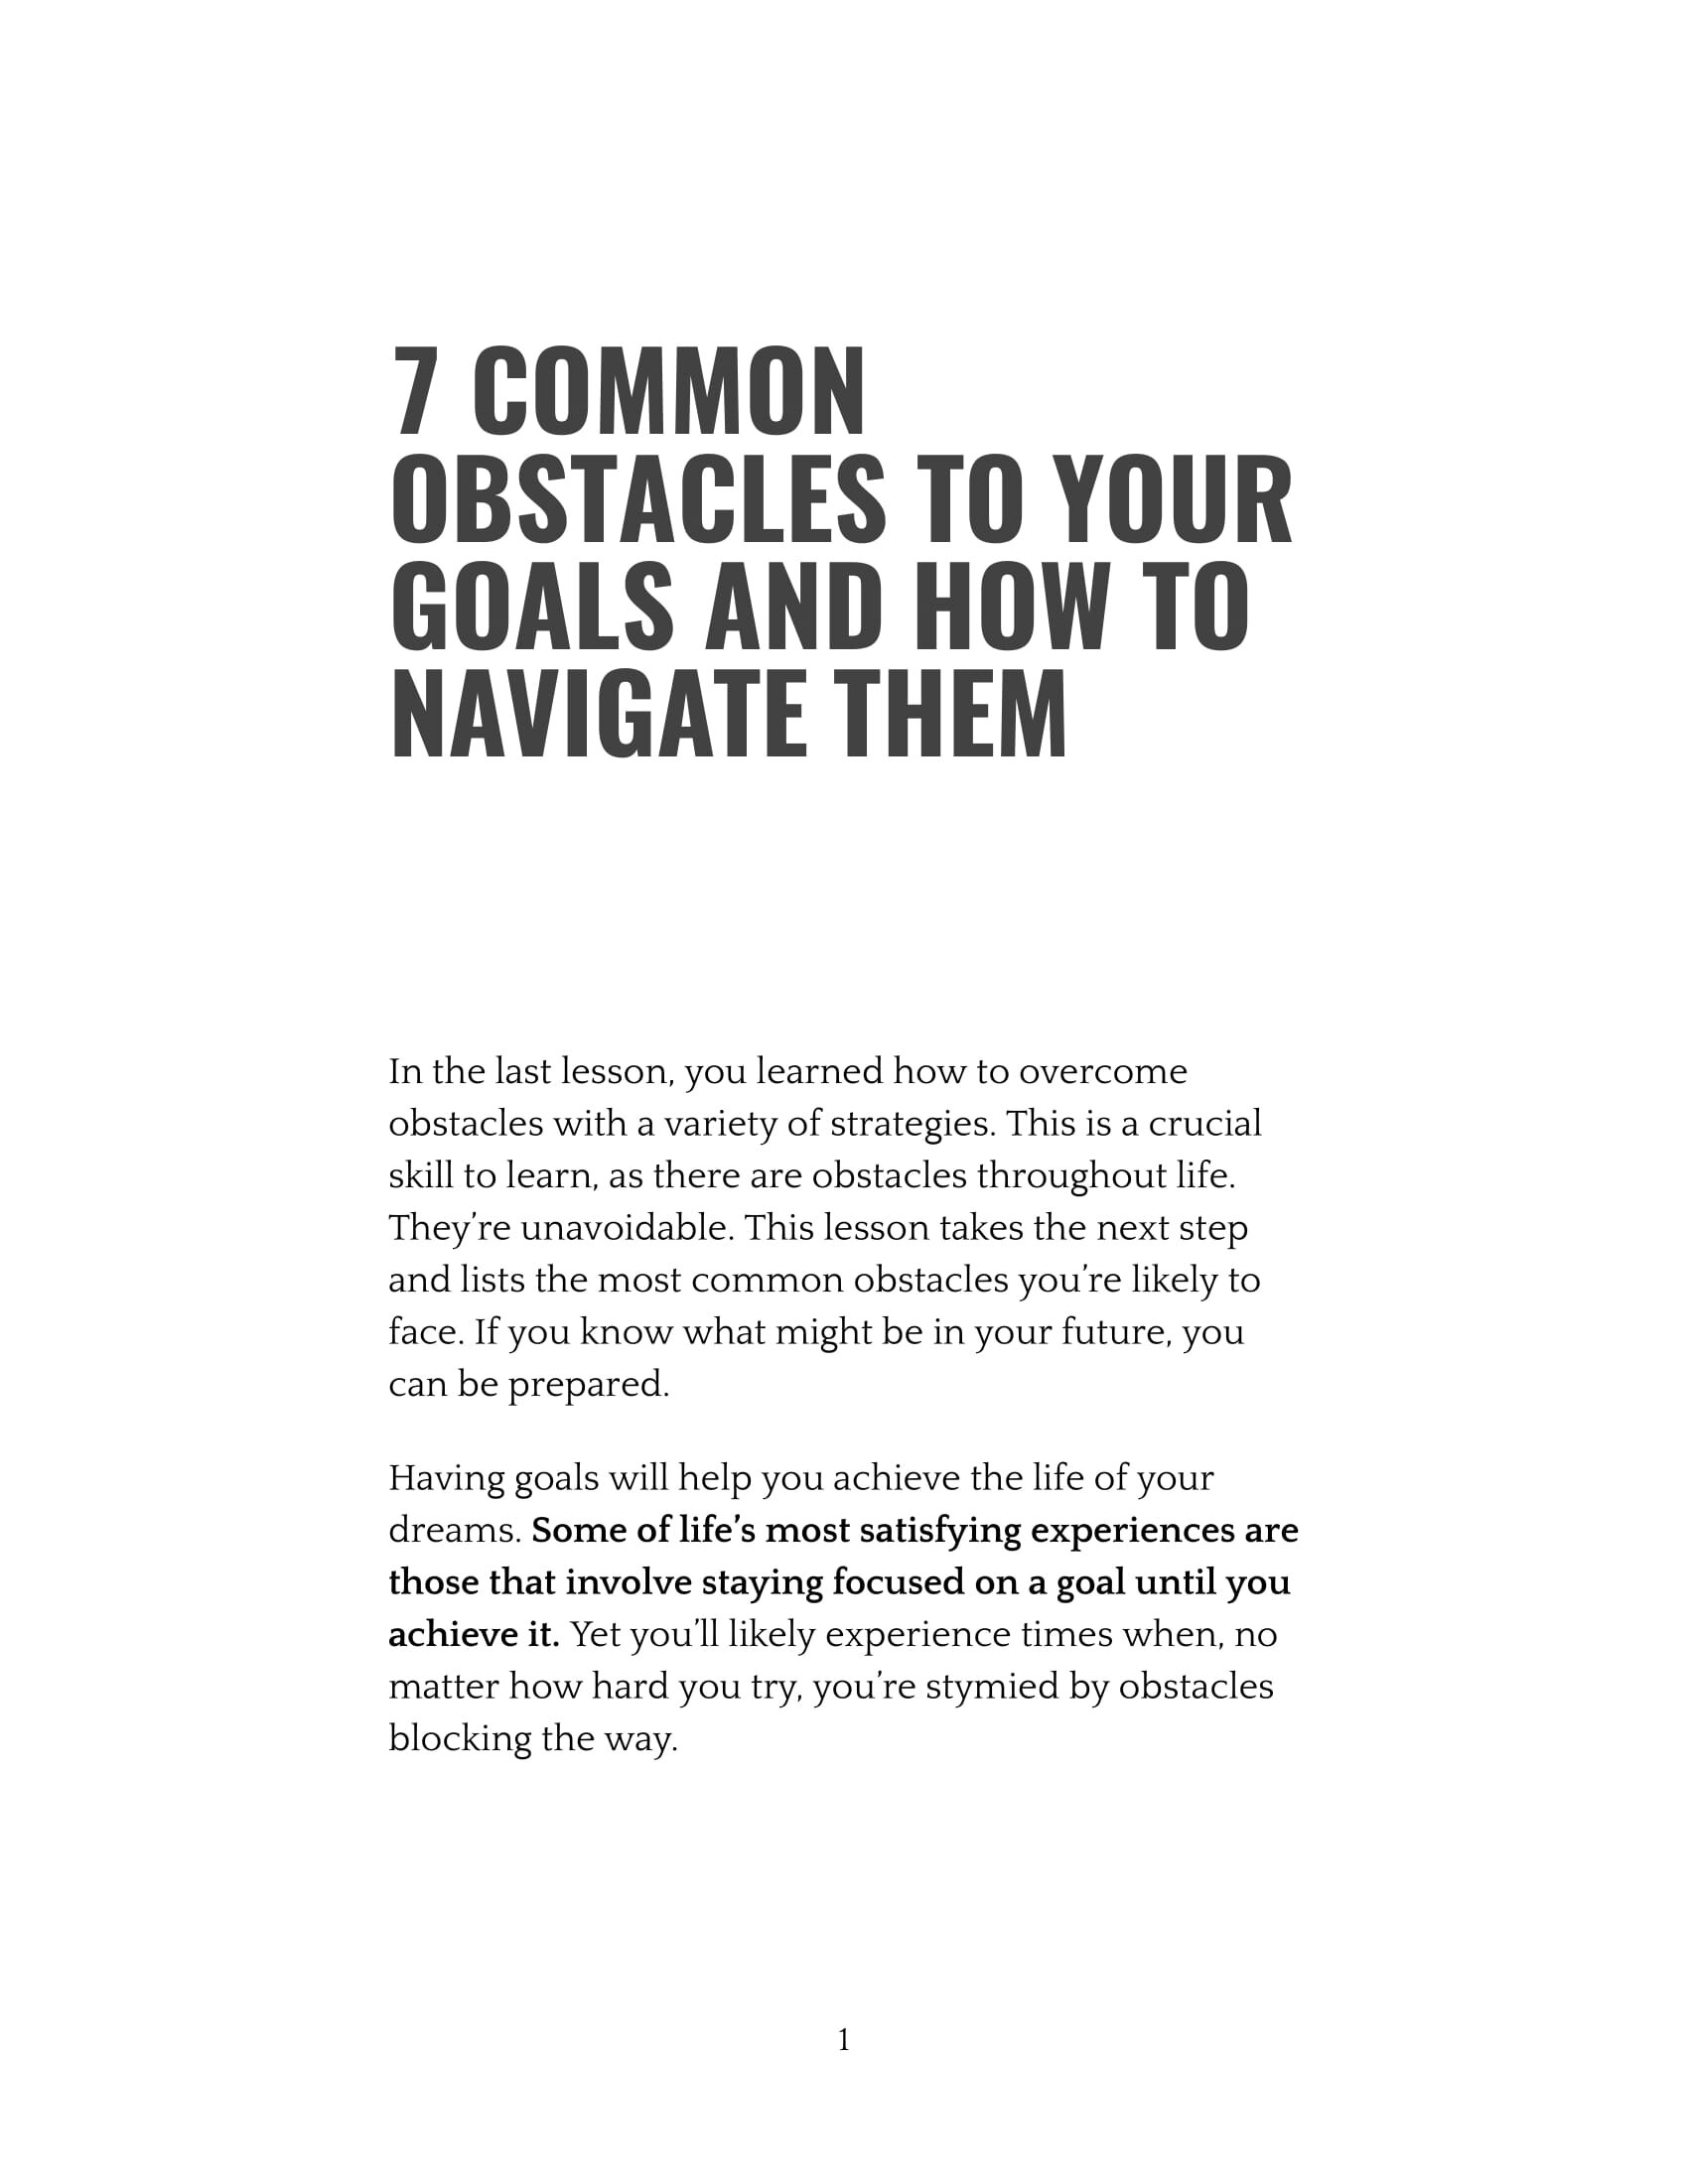 7 Common Obstacles To Your Goals And How To Navigate Them-1.jpg